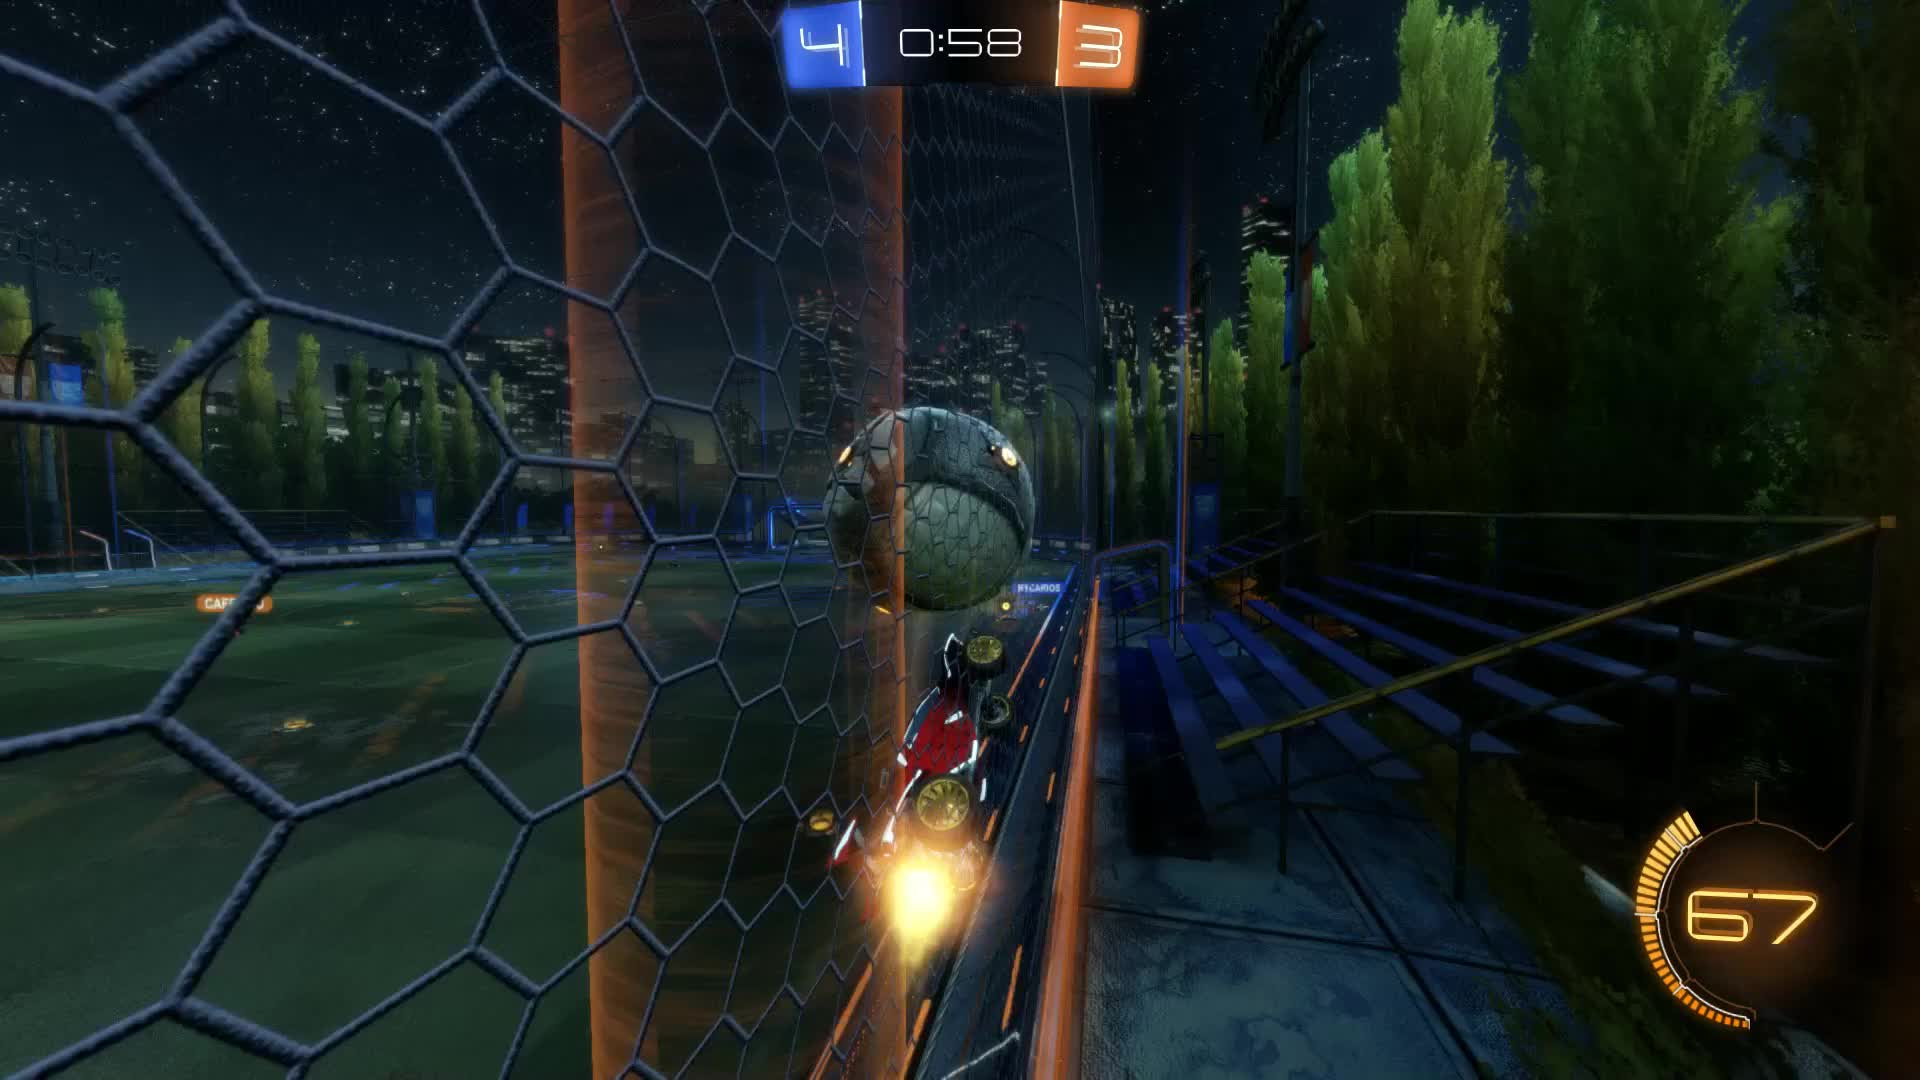 Entity | AJL, Gif Your Game, GifYourGame, Goal, Rocket League, RocketLeague, Goal 8: Entity | AJL GIFs